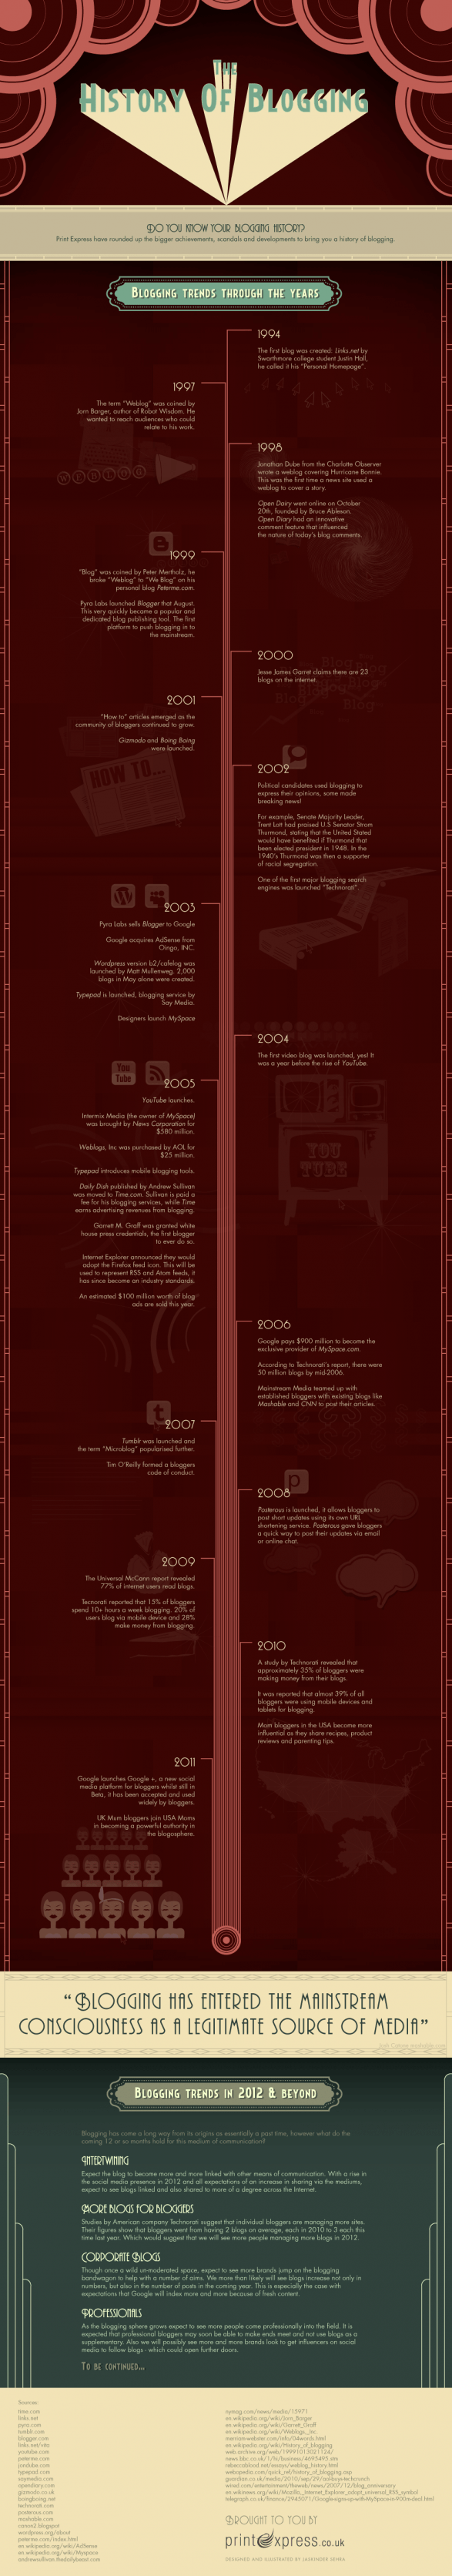 The History of Blogging